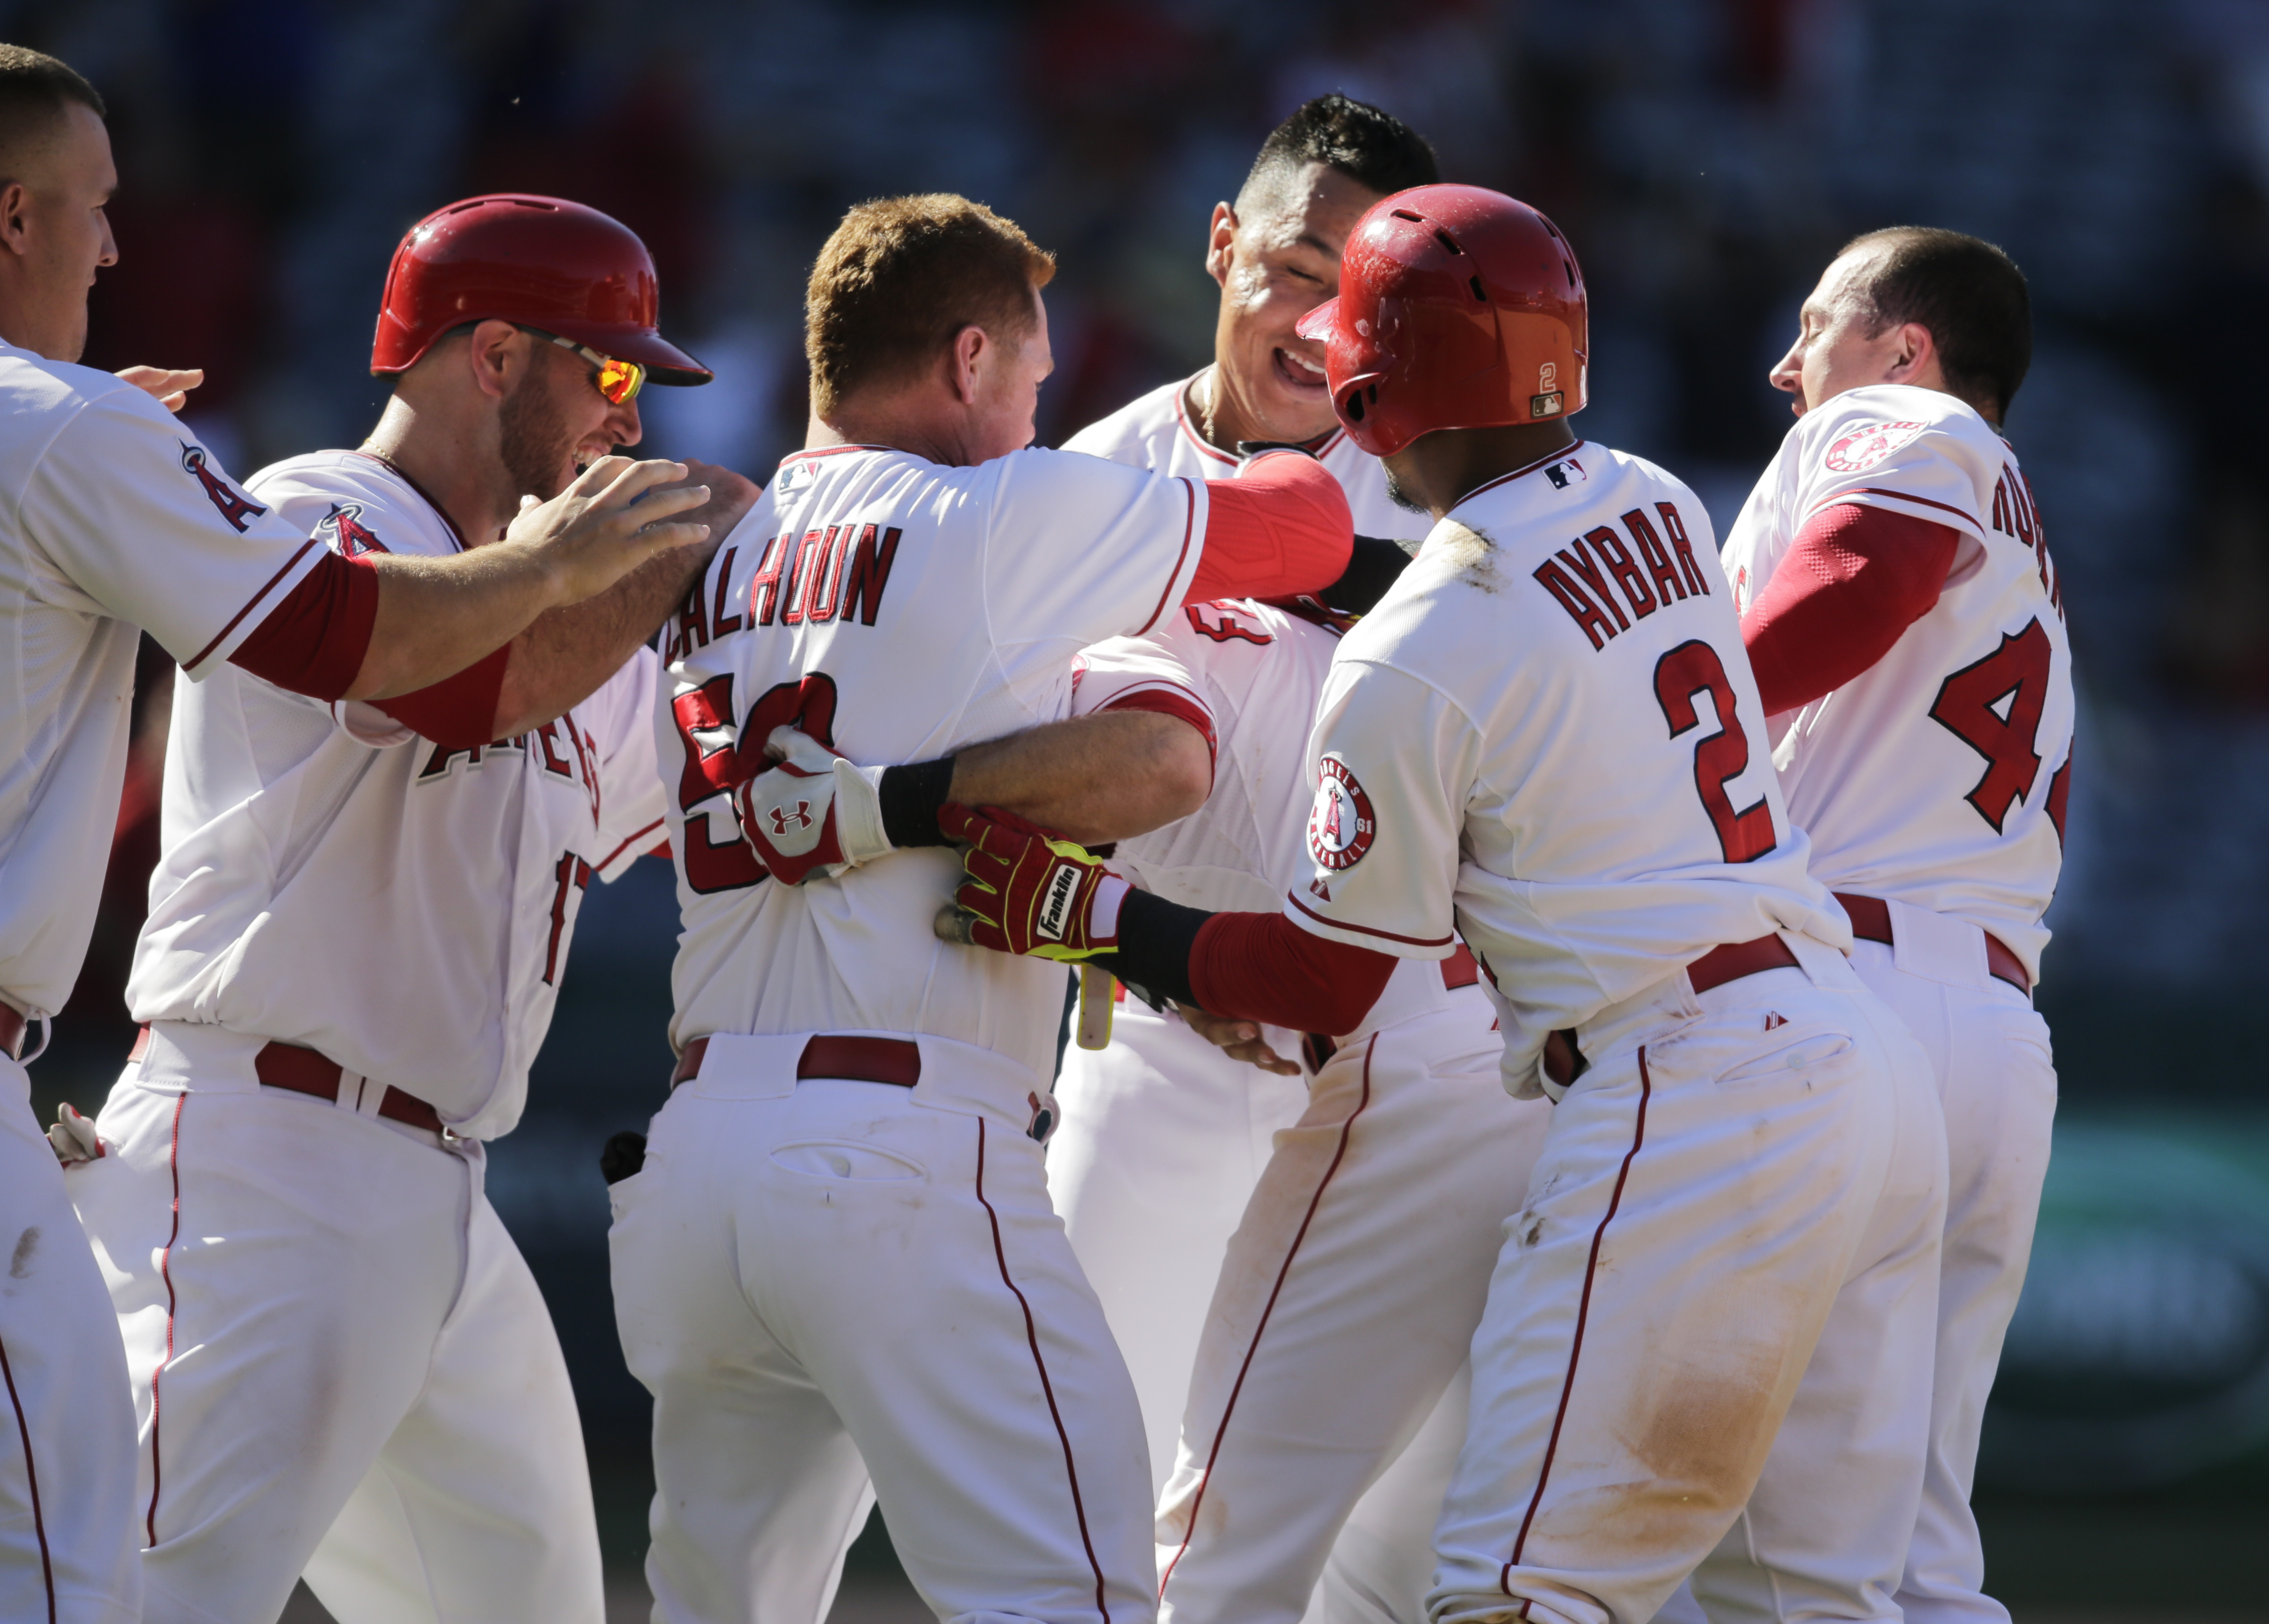 Los Angeles Angels players celebrate Taylor Featherston's walk-off single in the 13th inning of a baseball game against the Houston Astros, Wednesday, June 24, 2015, in Anaheim, Calif. The Angels won 2-1. (AP Photo/Jae C. Hong)